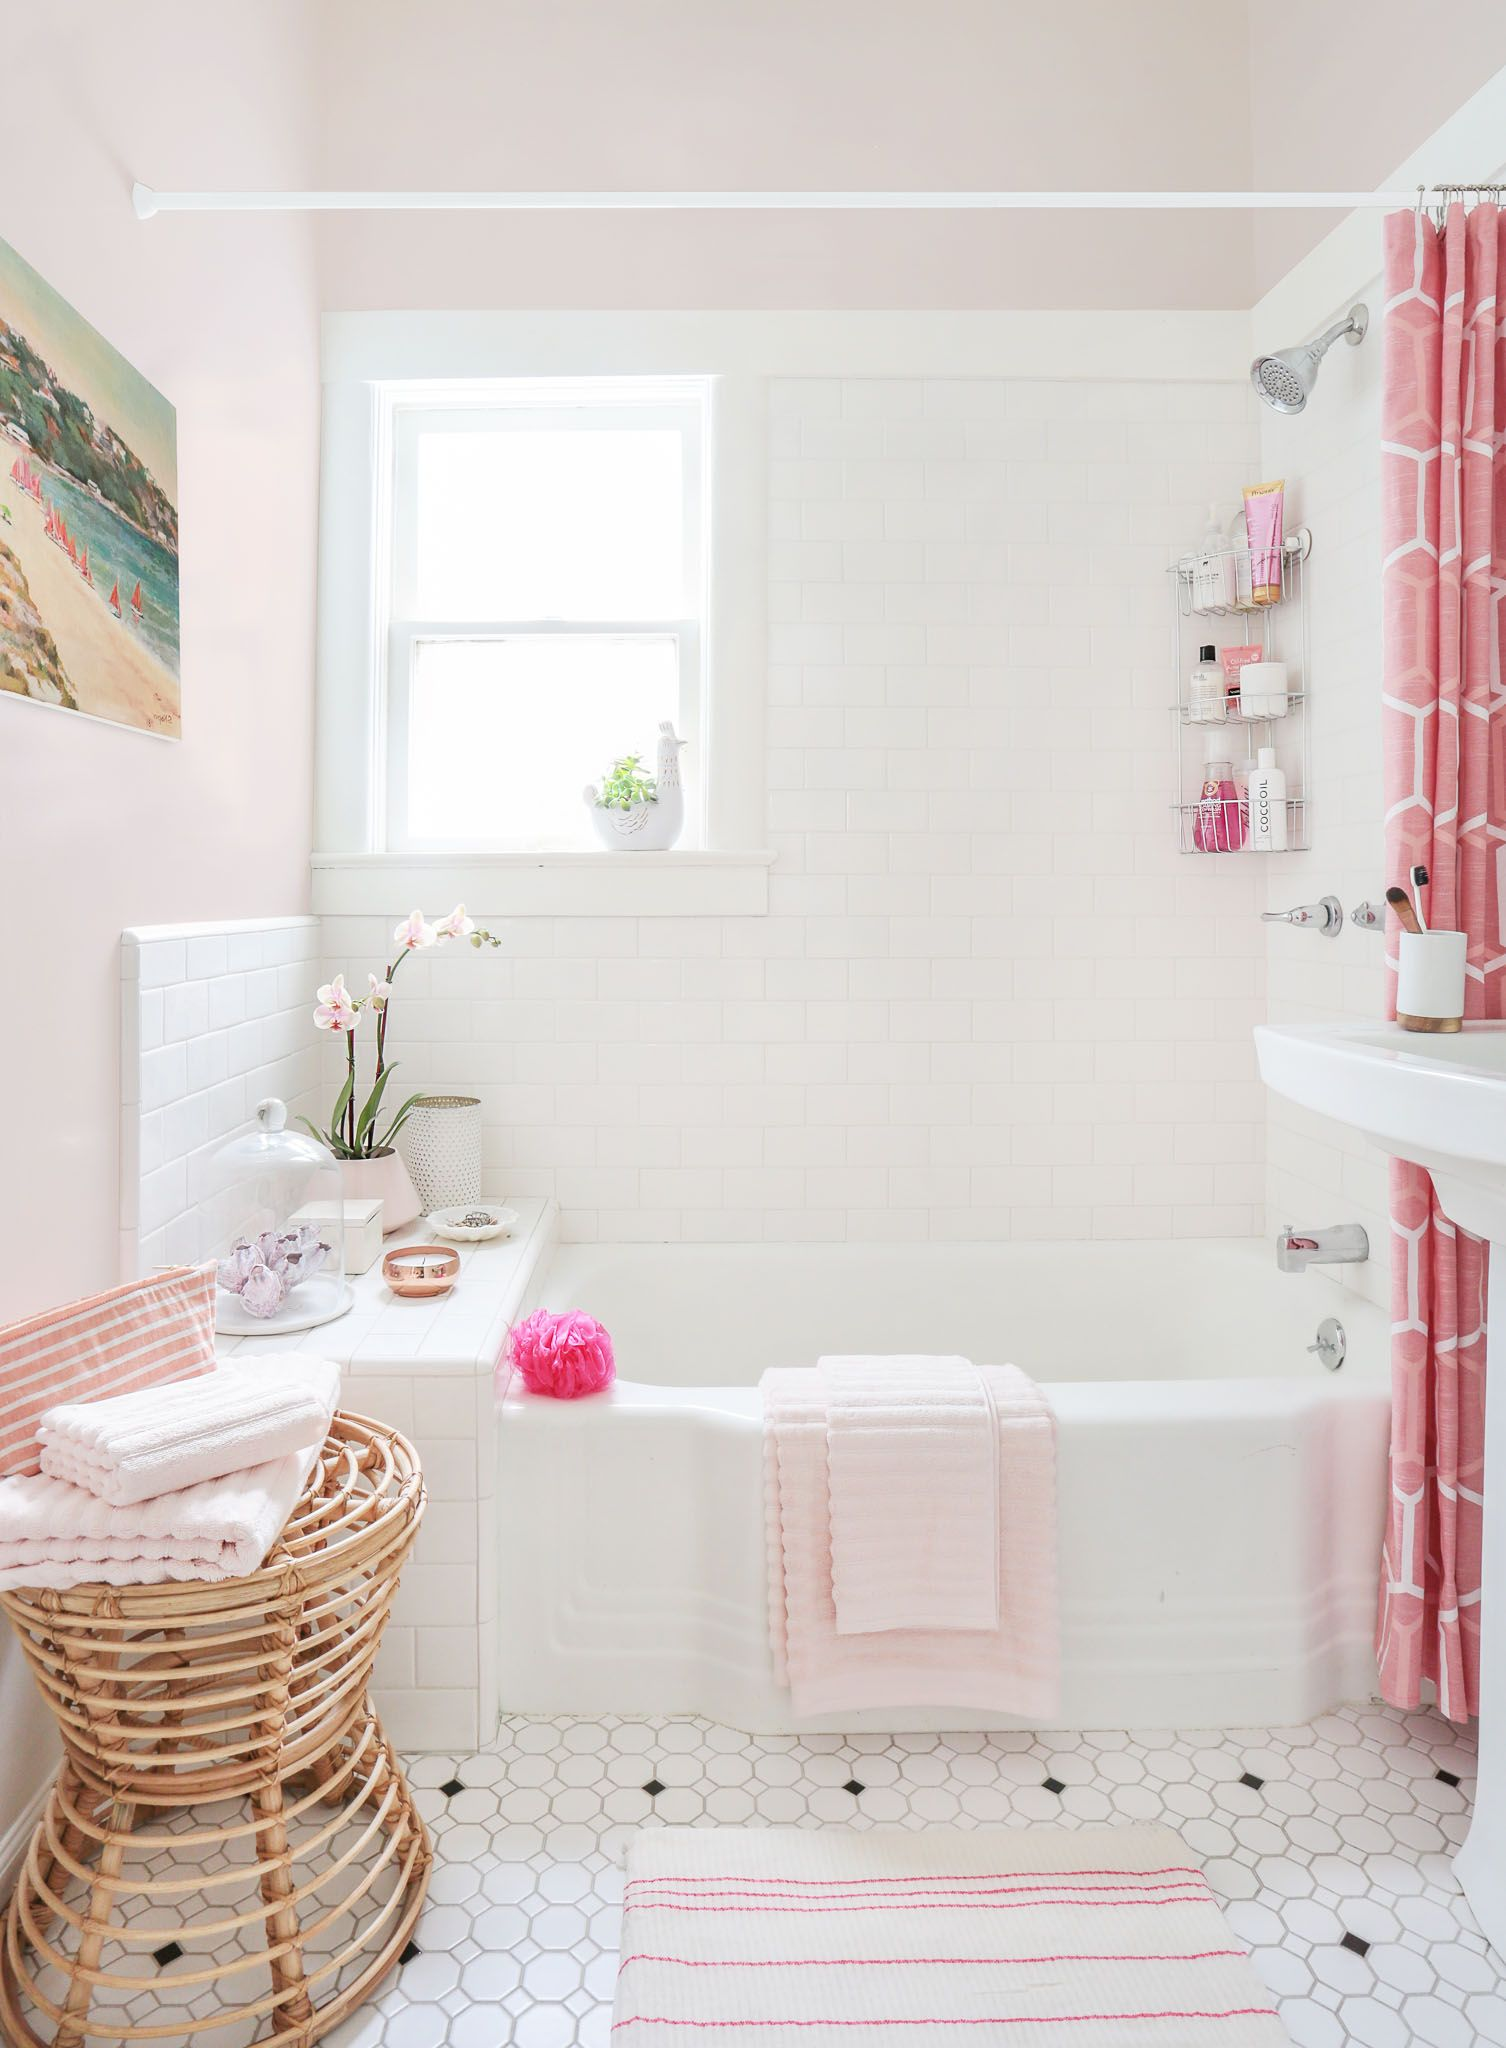 black and background wallpaper ideas bathroom pink